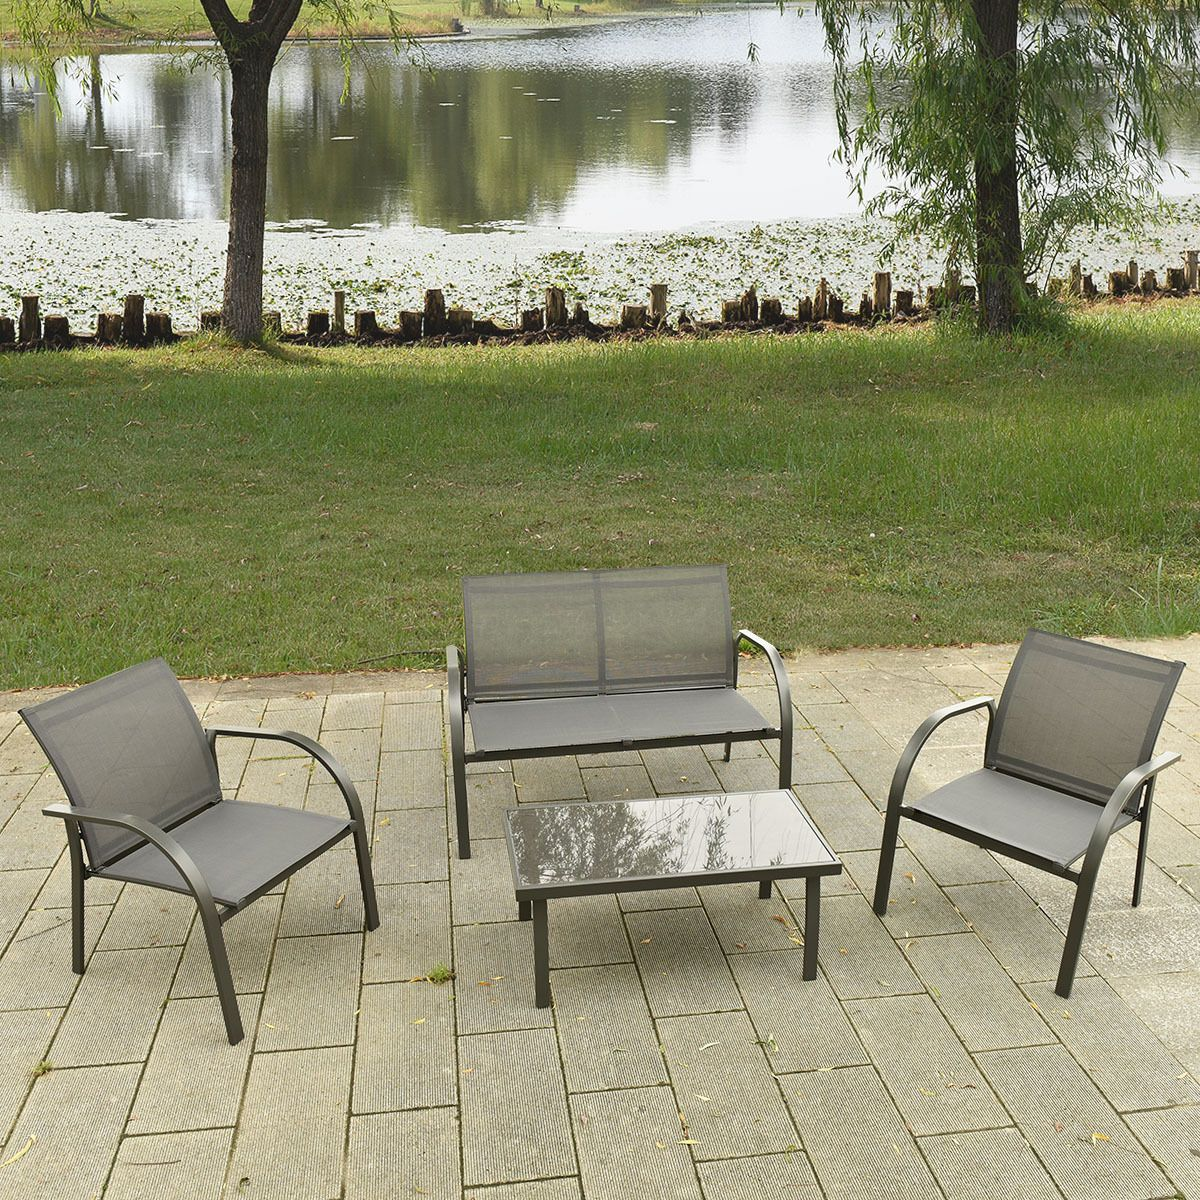 Garden Furniture Steel 4pcs patio garden furniture set steel frame outdoor lawn sofa